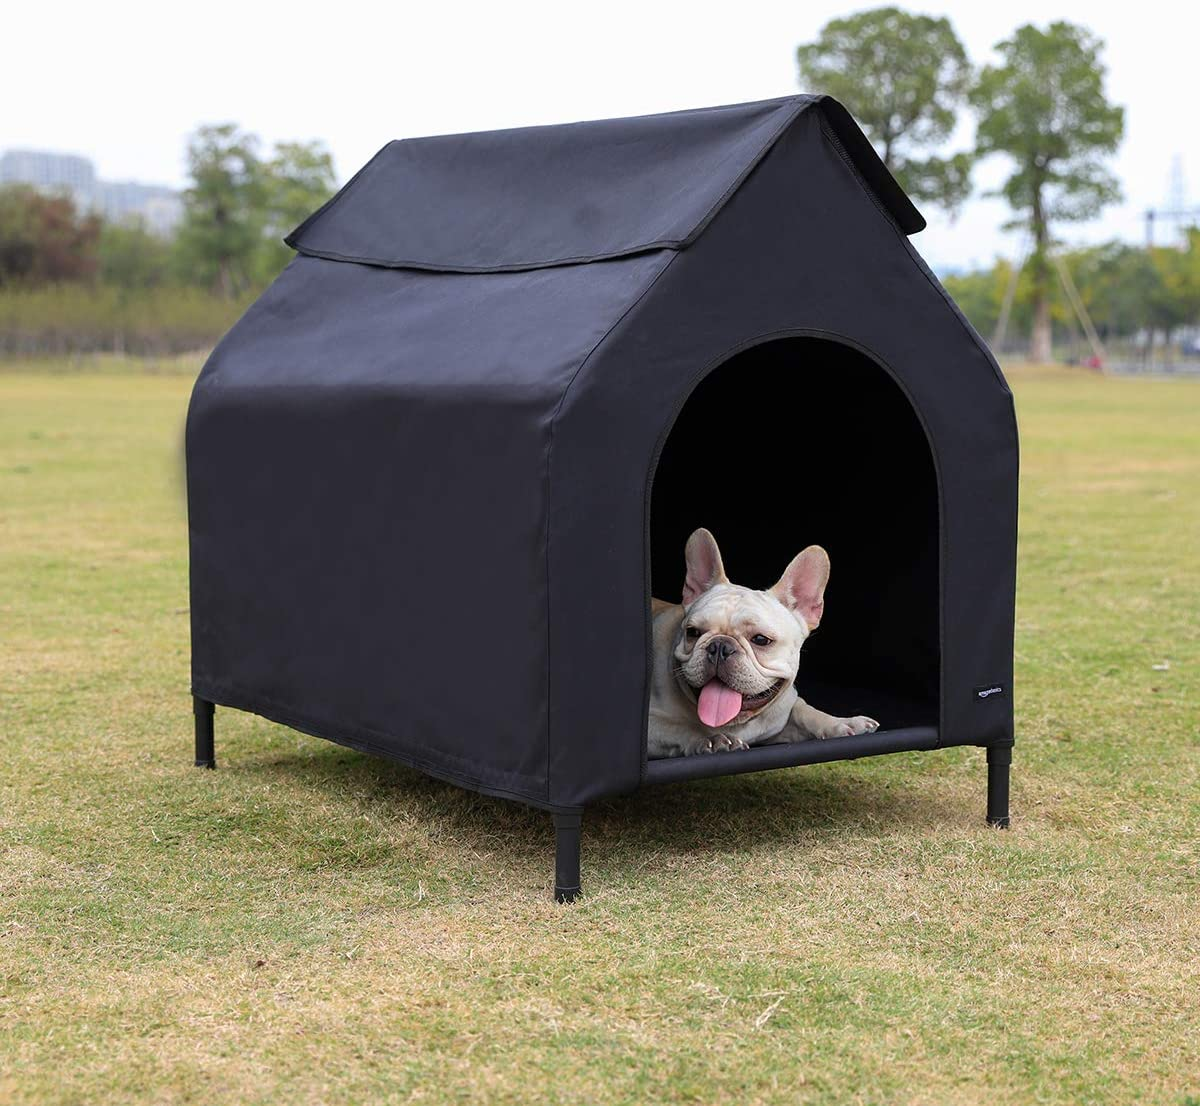 AmazonBasics Elevated Portable Pet House, Small 35 x 32 x 26 Inches , Black